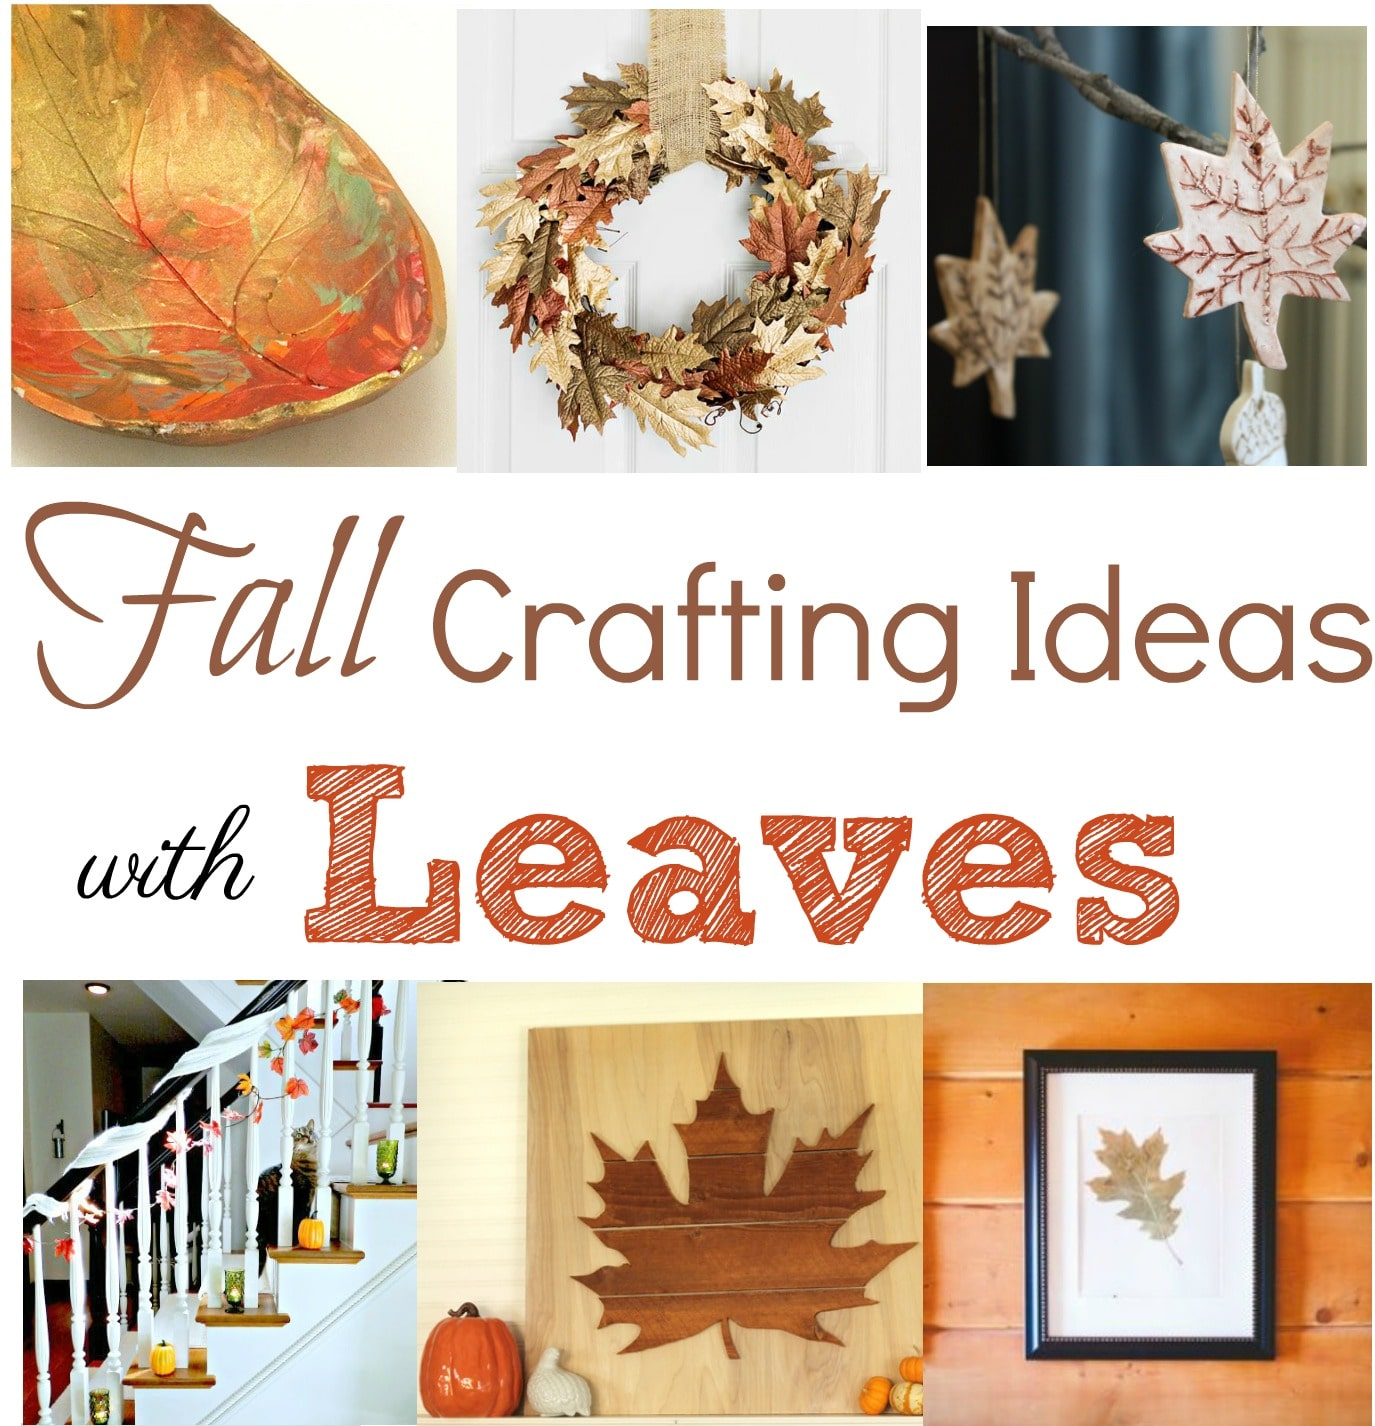 Fall Crafting Ideas with Leaves - Get ideas for leaf inspired craft projects that you can make for your home. virginiasweetpea.com